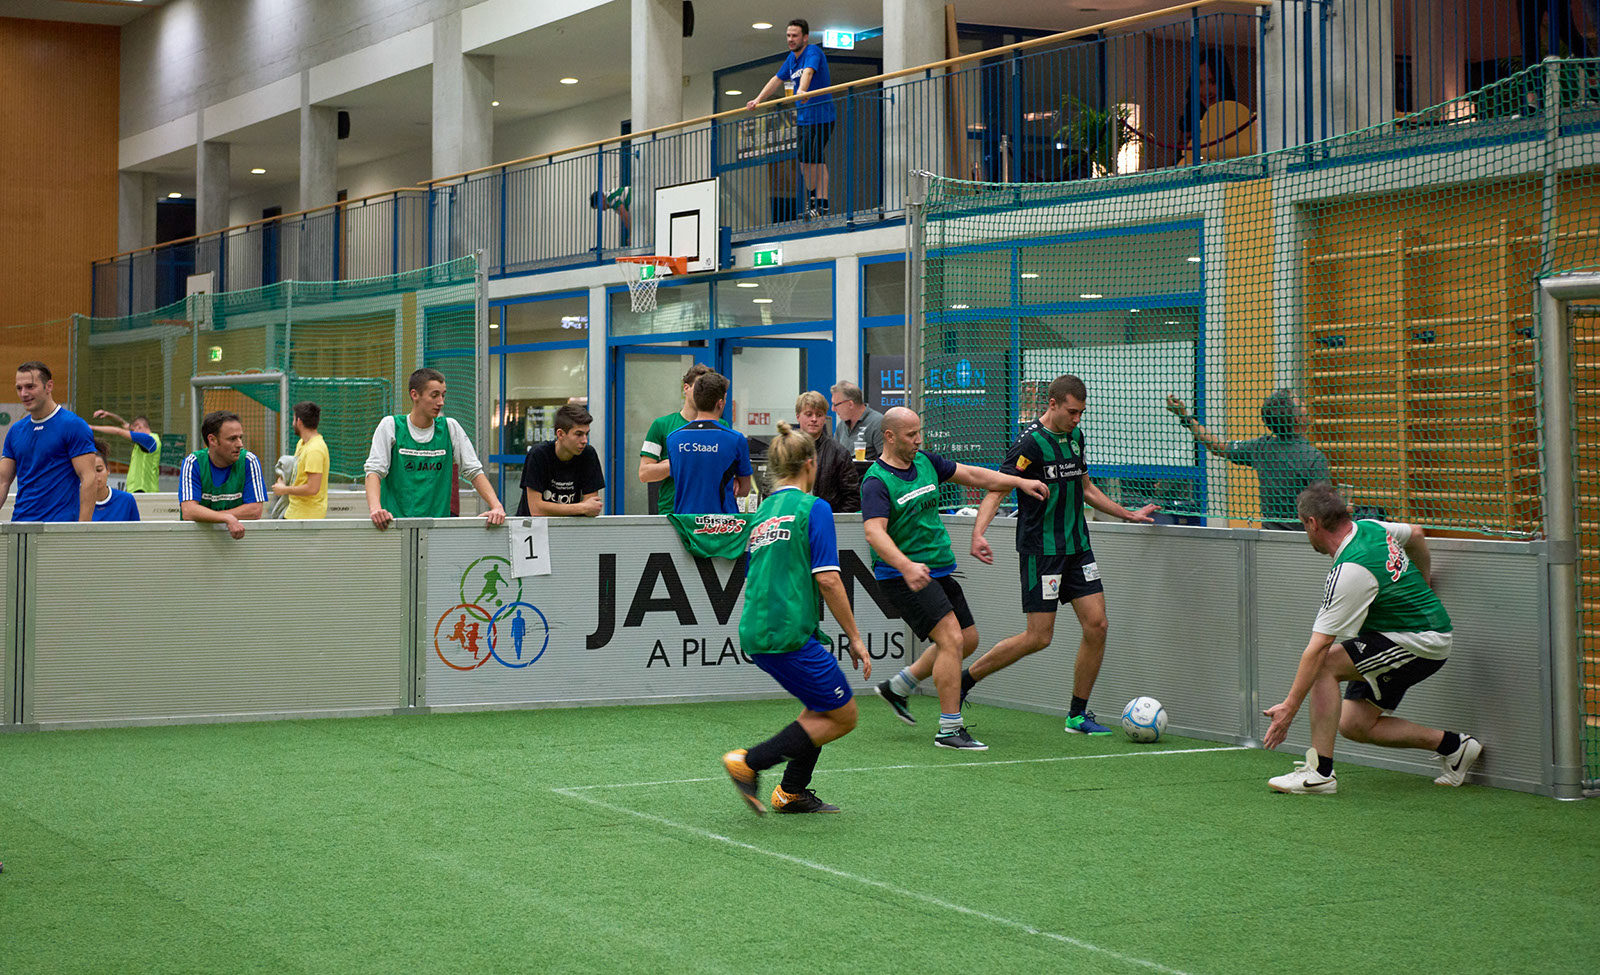 Bodensee-Cup_20171110_214622.jpg